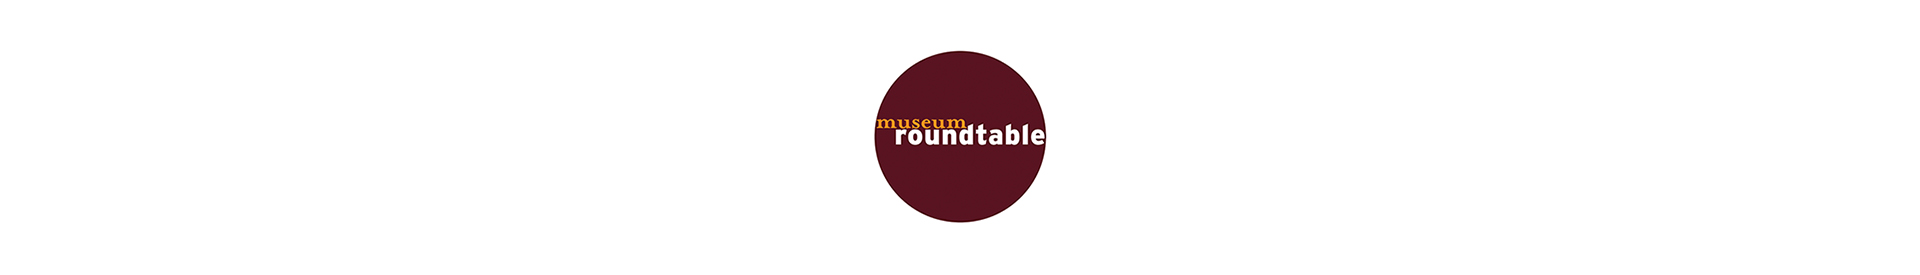 museum-roundtable-banner